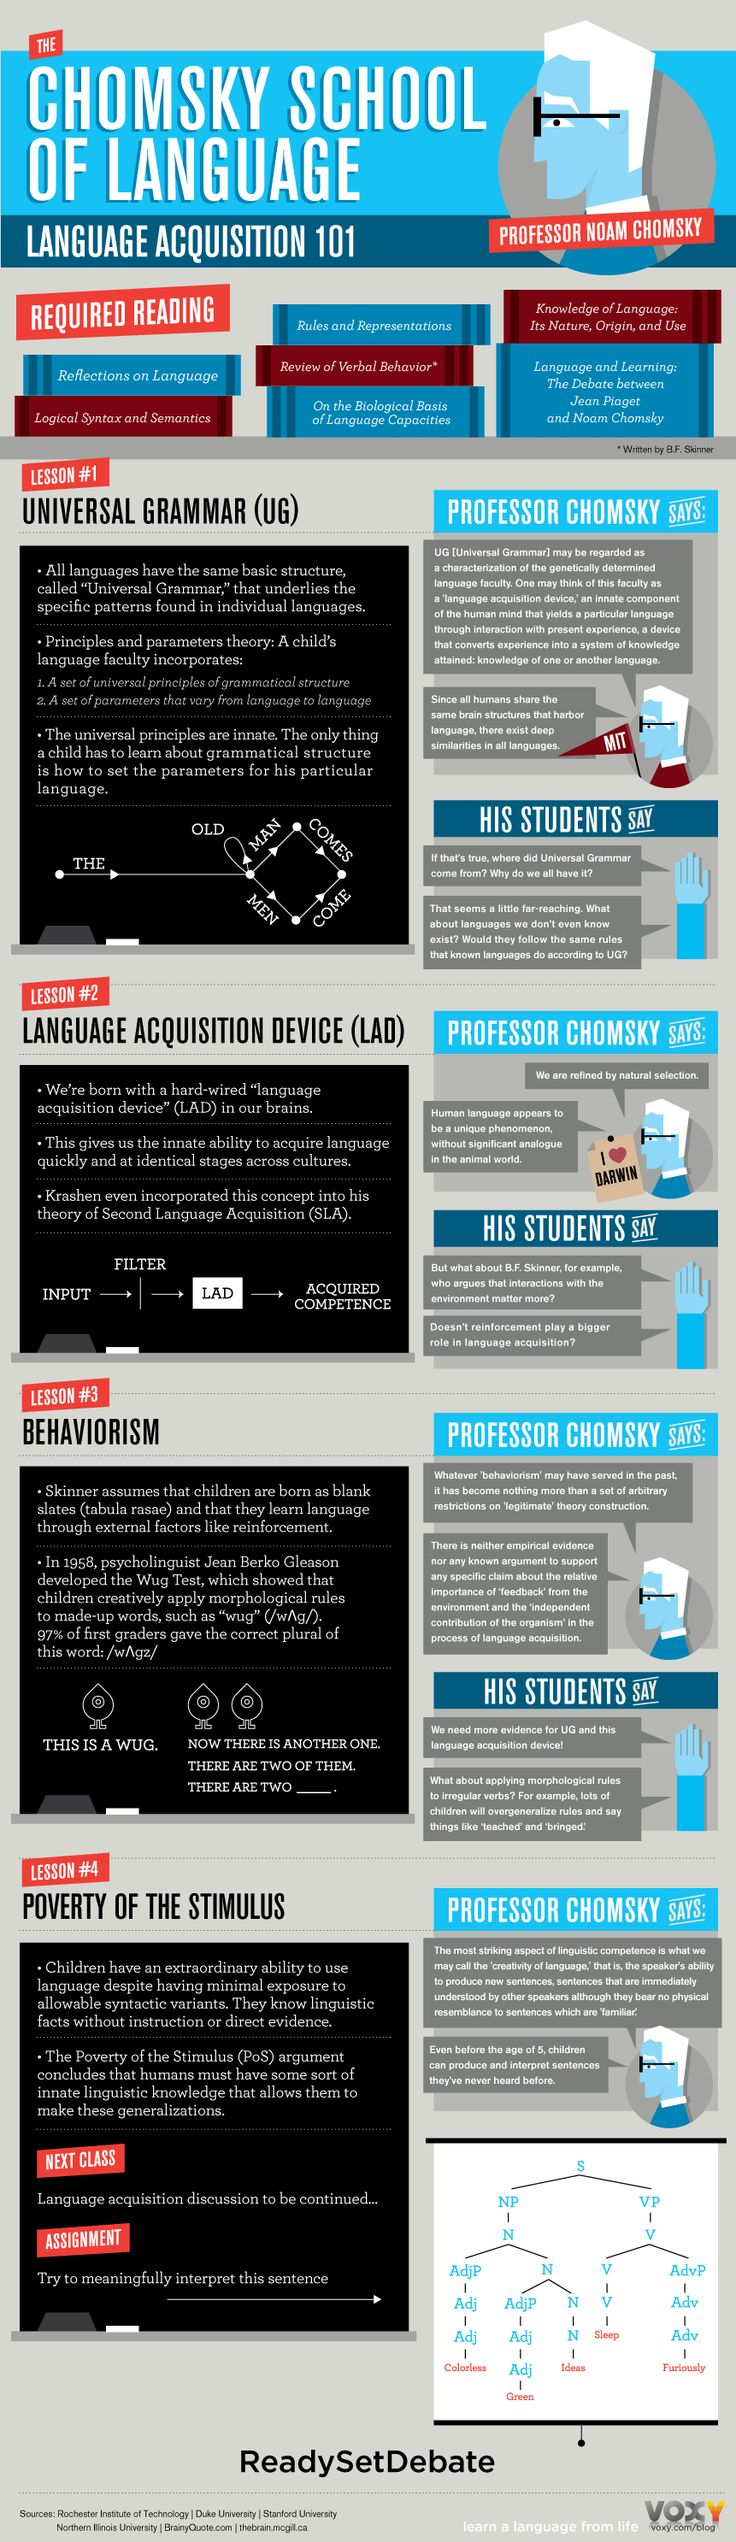 The-Chomsky-School-of-Language-Infographic